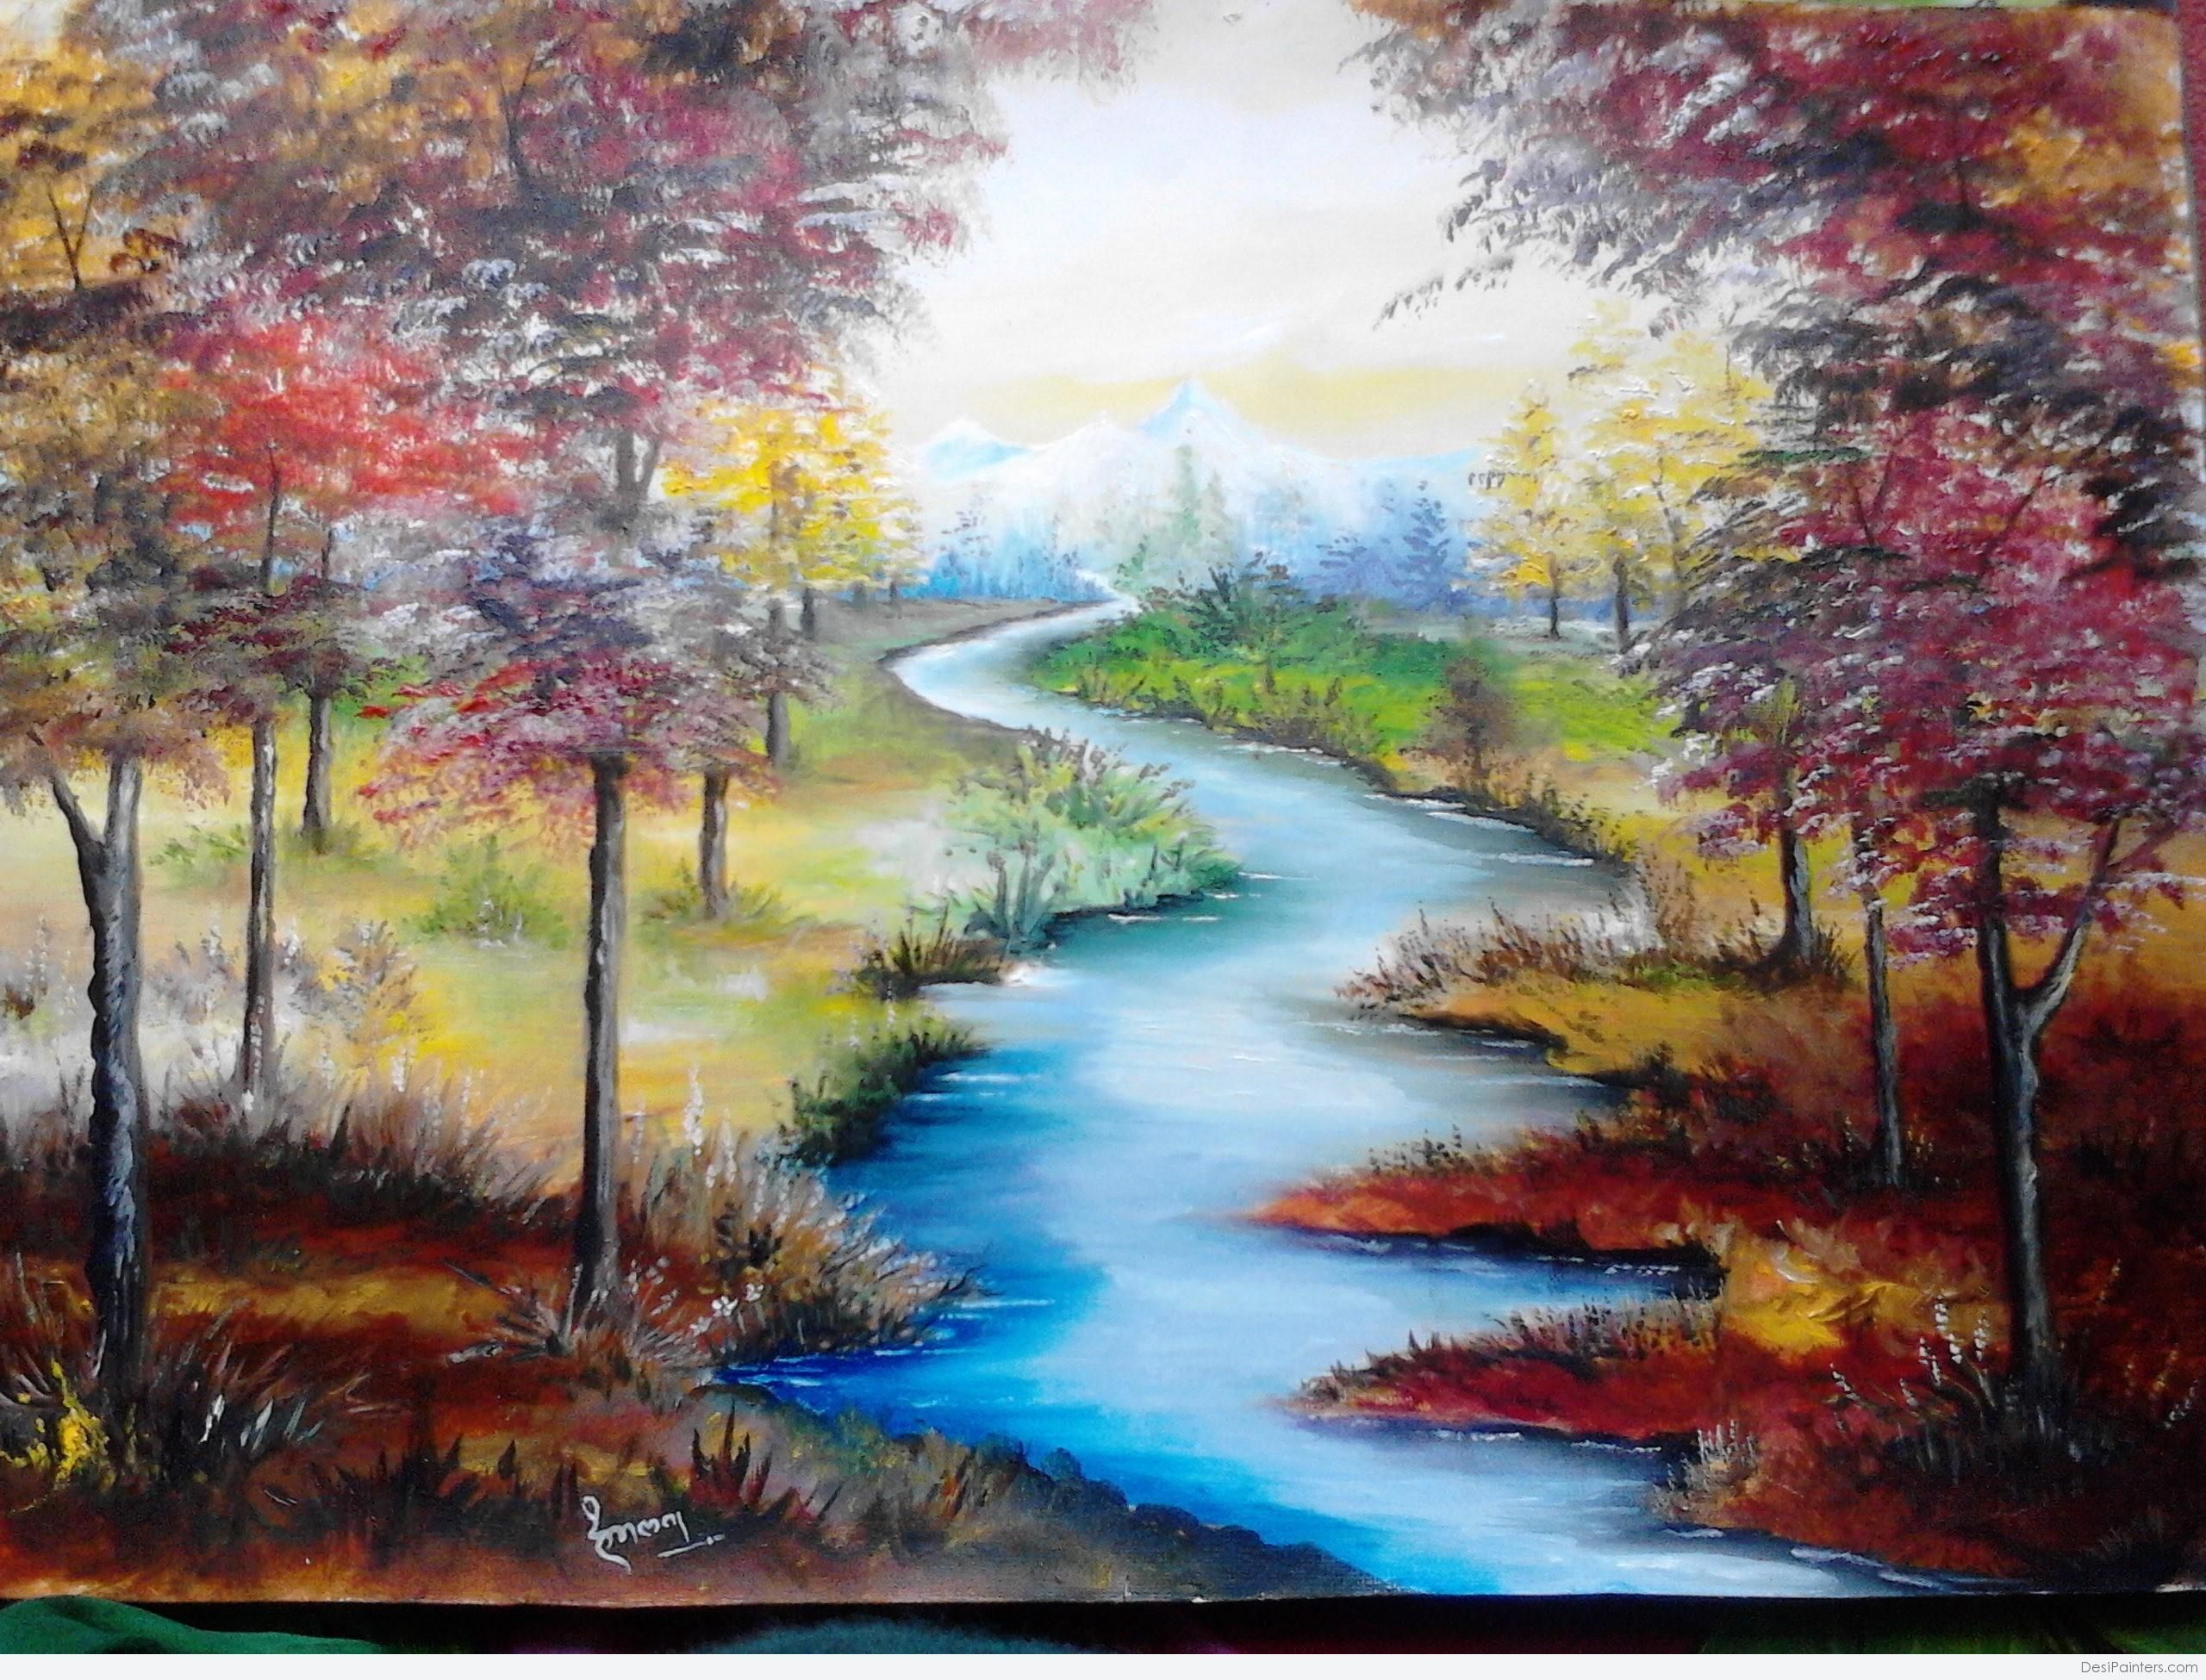 Image Result For Nature Painting Nature Paintings Oil Painting Nature Beautiful Paintings Of Nature